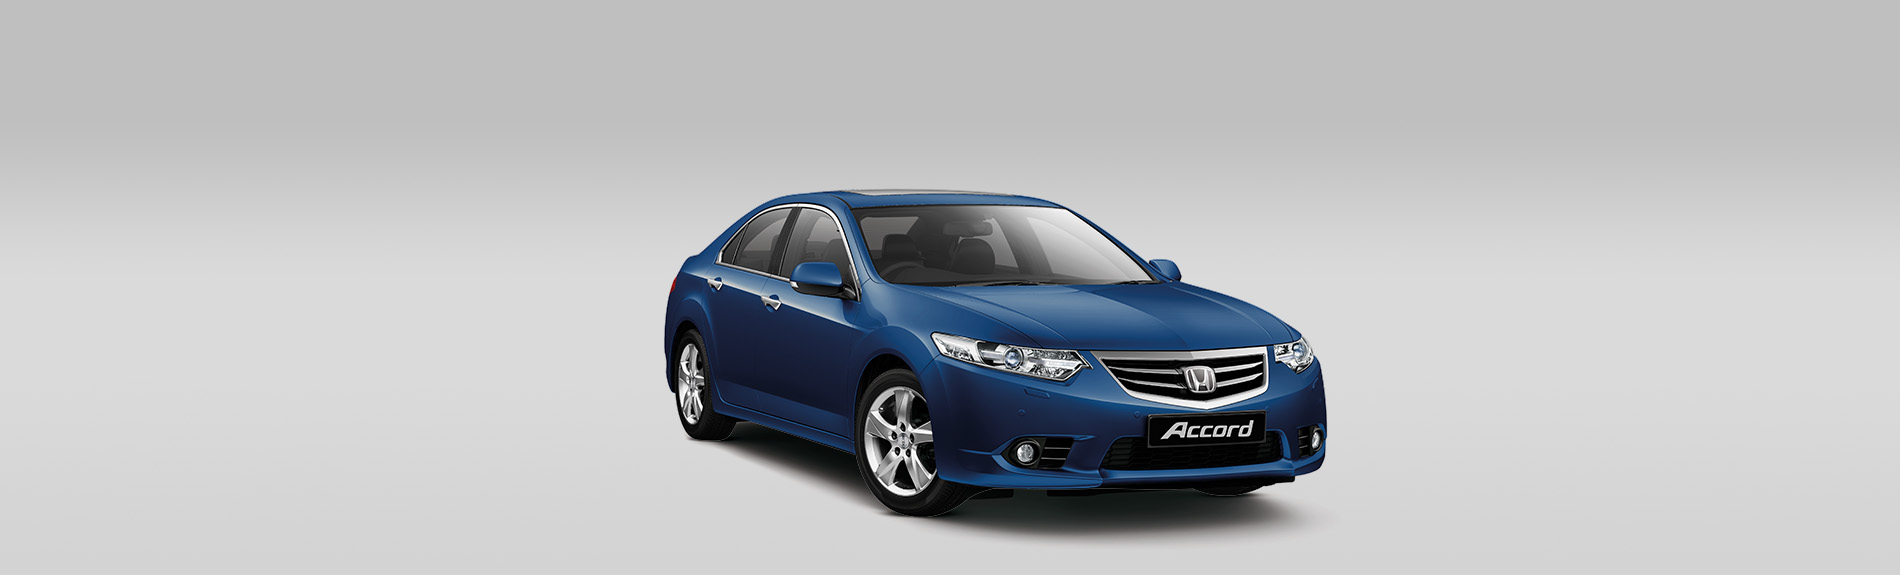 Used honda accord for Used honda accords